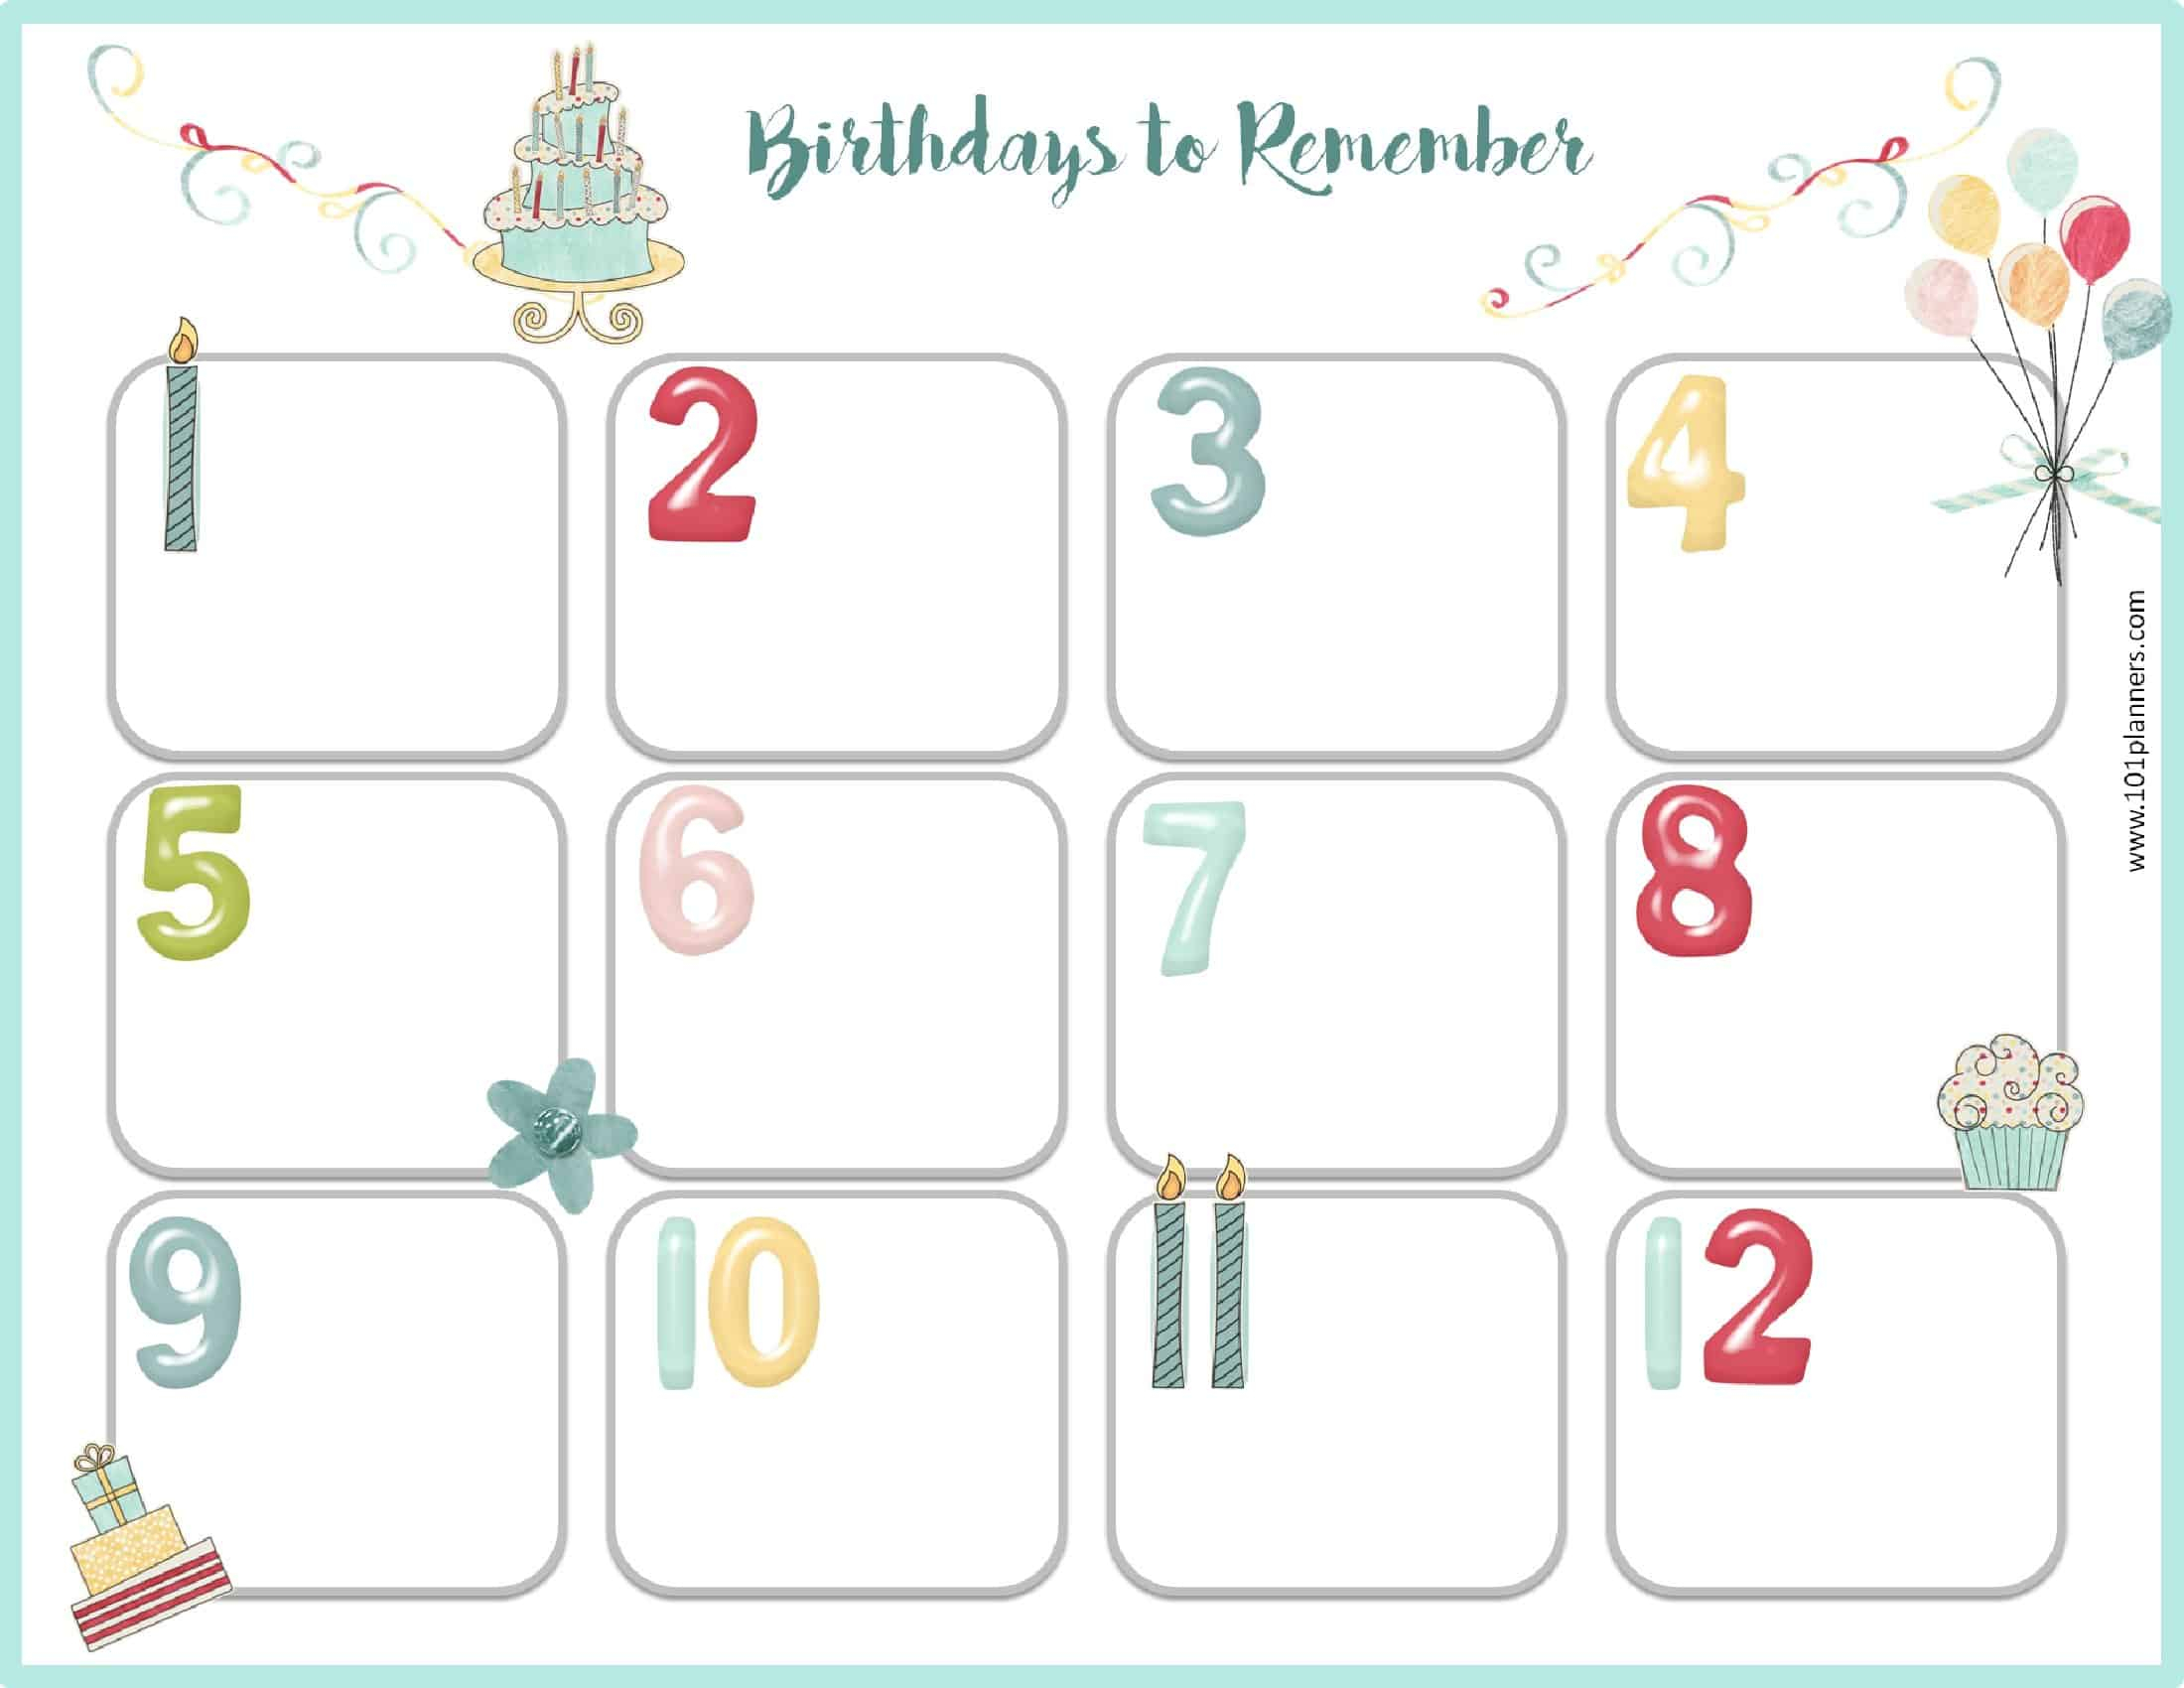 Free Birthday Calendar | Printable & Customizable | Many Designs! for Edited Birthday Calendar Template